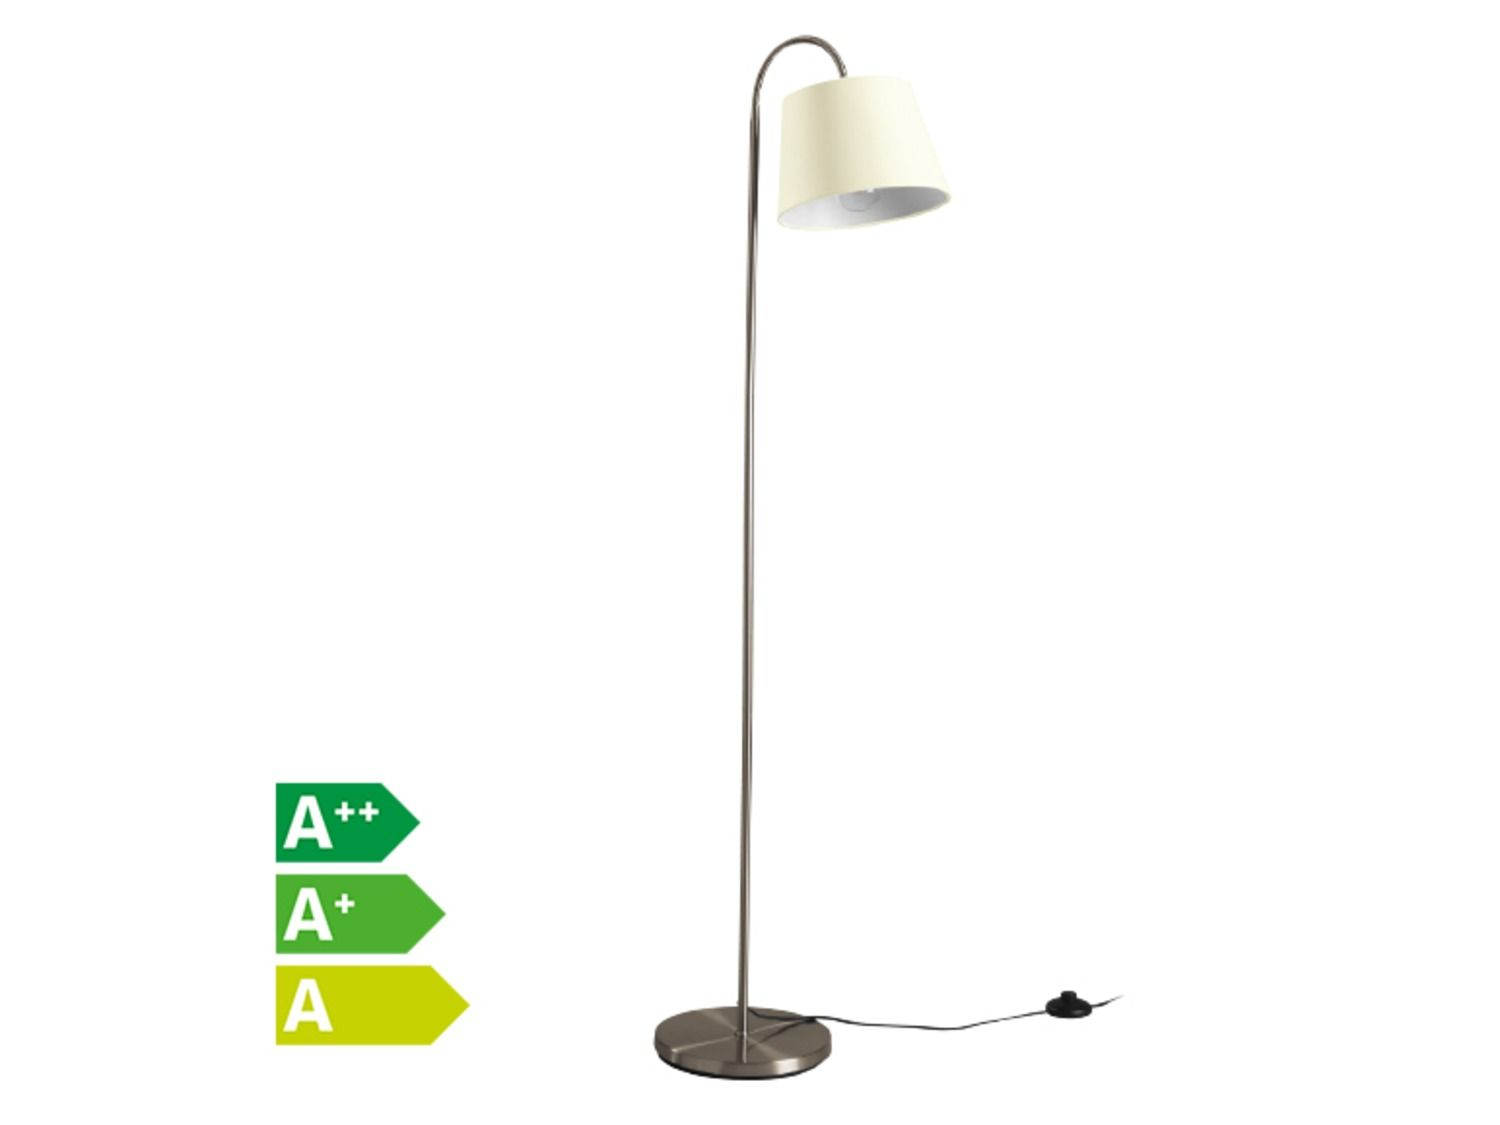 Lampe Led Exterieur Lidl Led Ceiling Light With Bluetooth Speaker Lidl Mail Cabinet